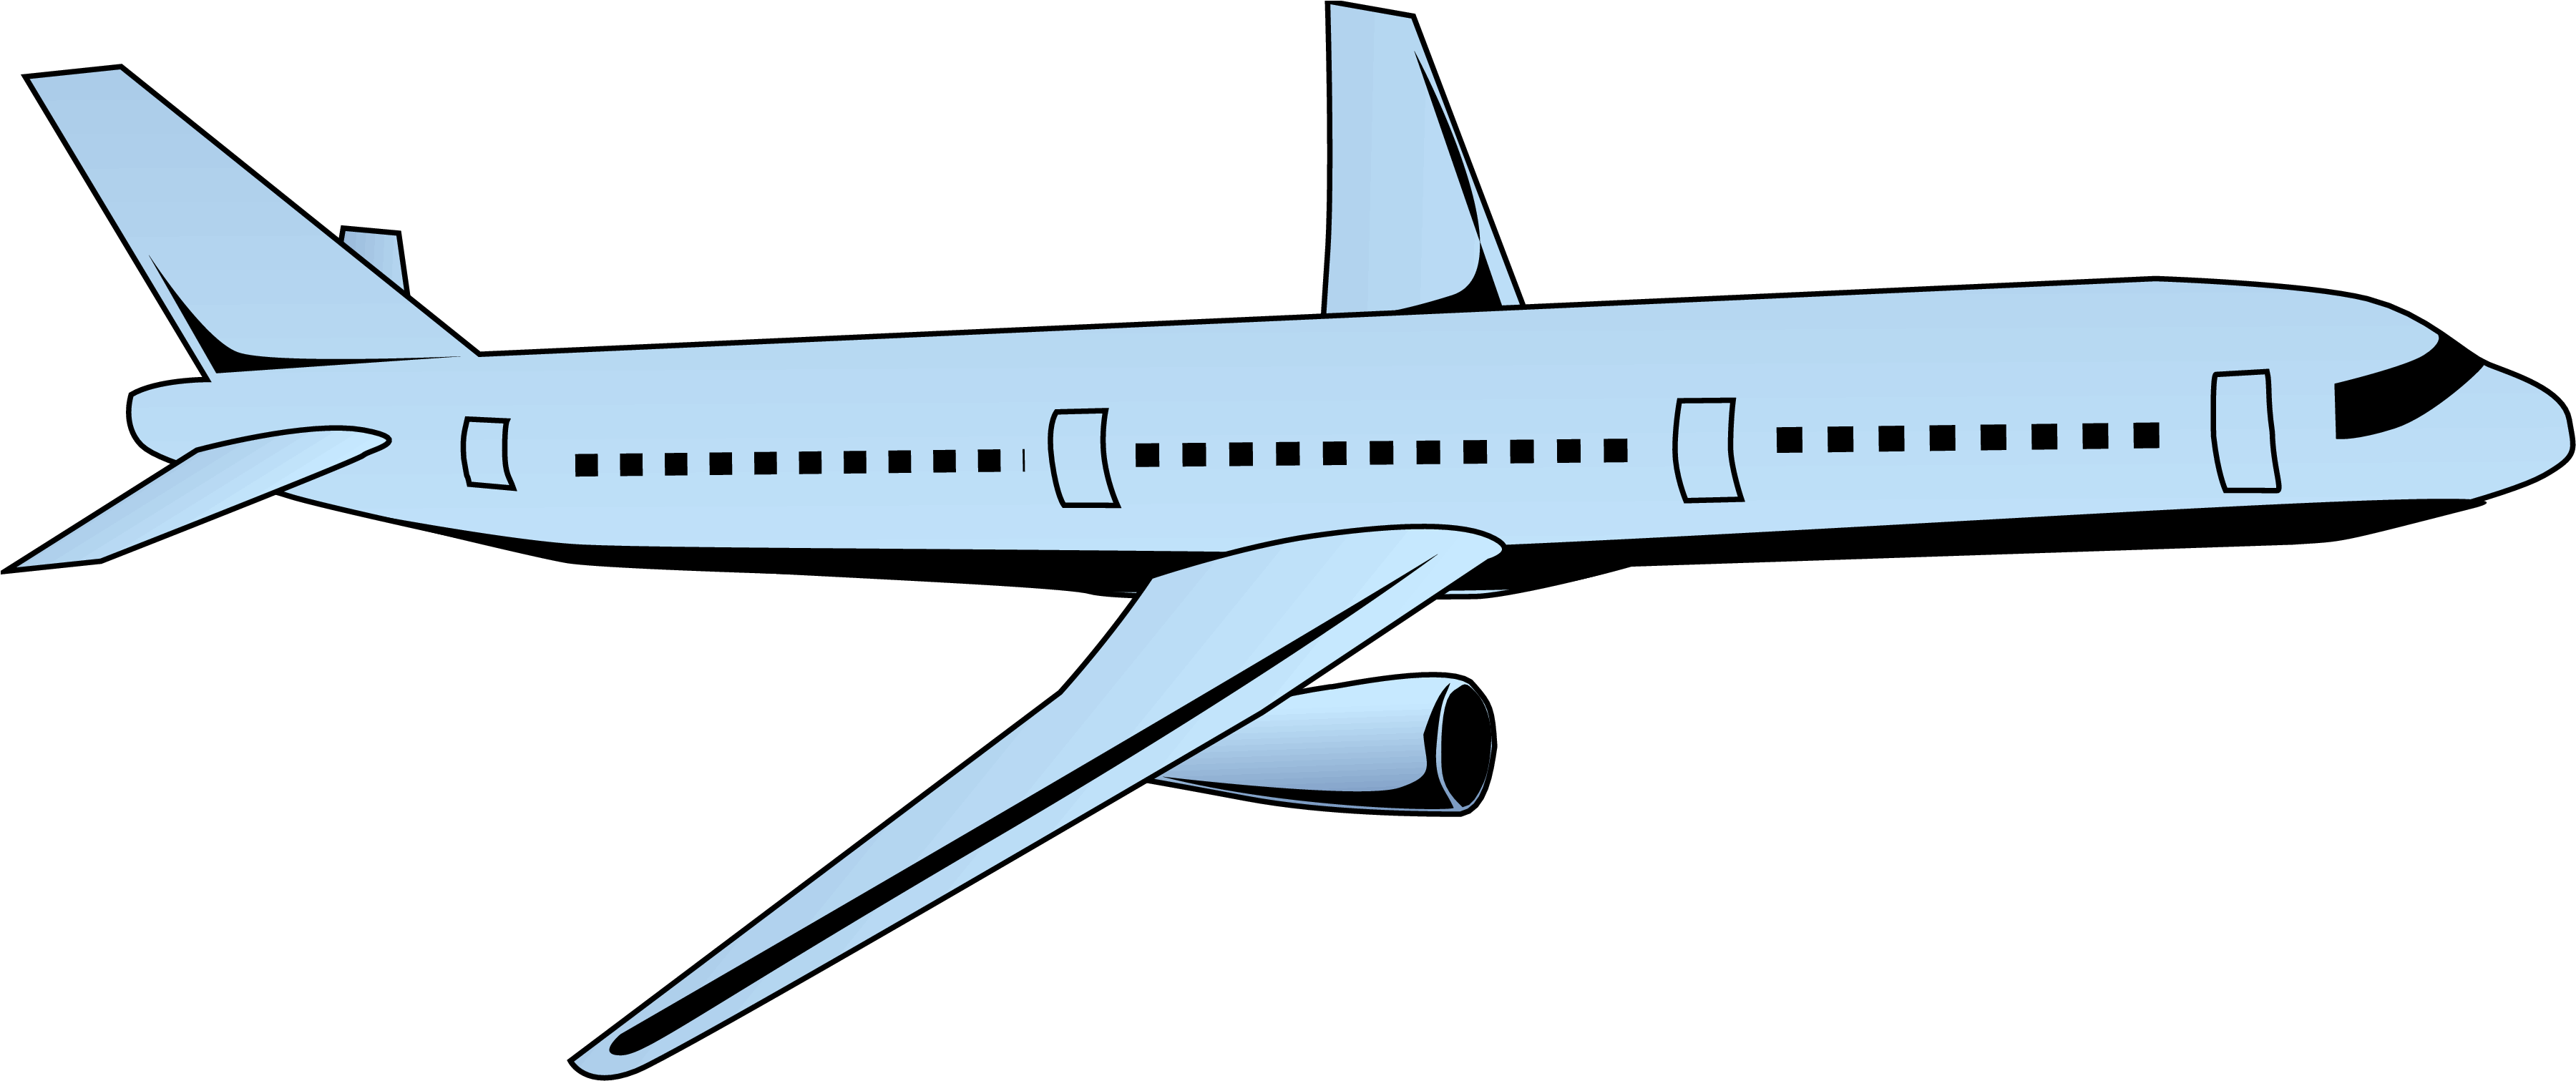 Png image clip art. Clipart plane airplane